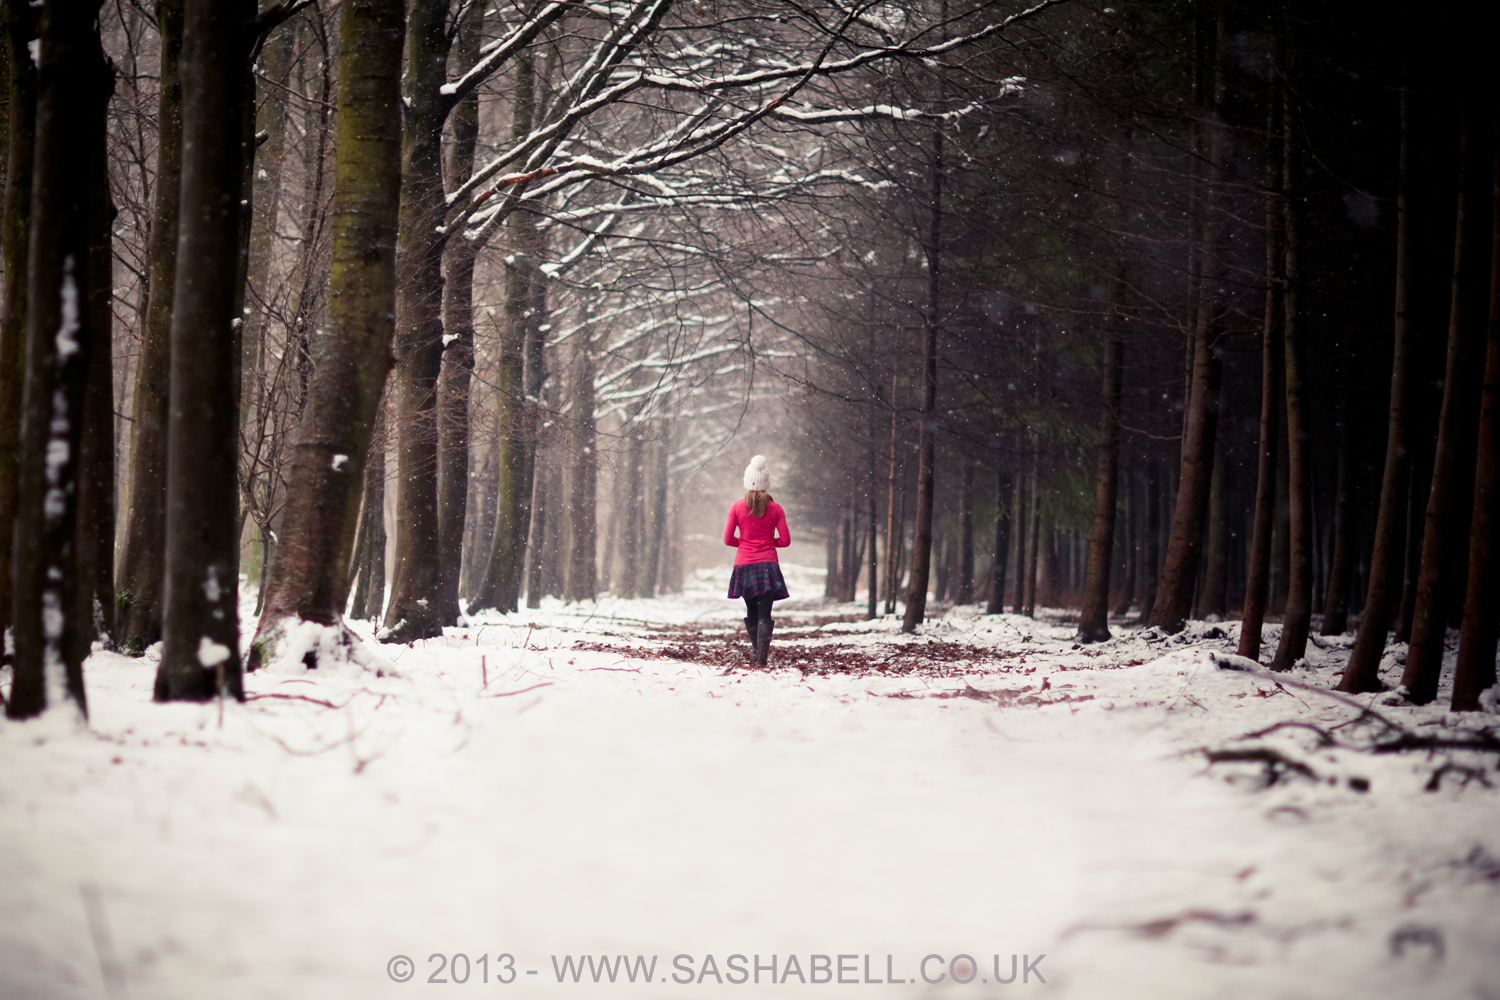 Winter Woods – Day 121/365